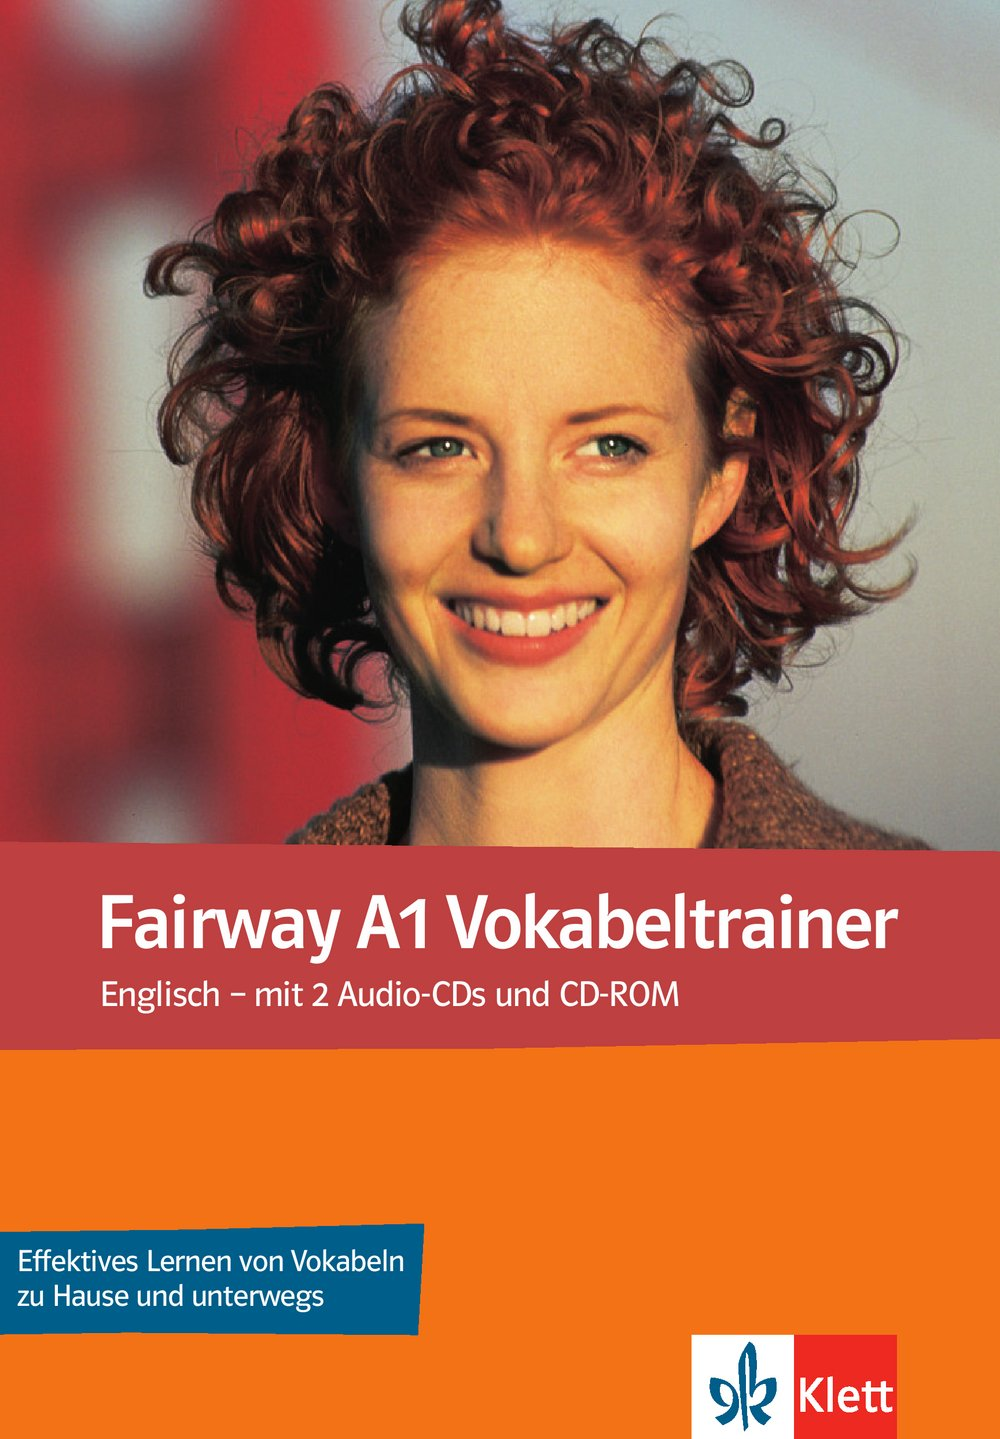 Fairway 1 Vokabeltrainer: Vokabelheft + 2 Audio-CDs + CD-ROM (PC/Mac)